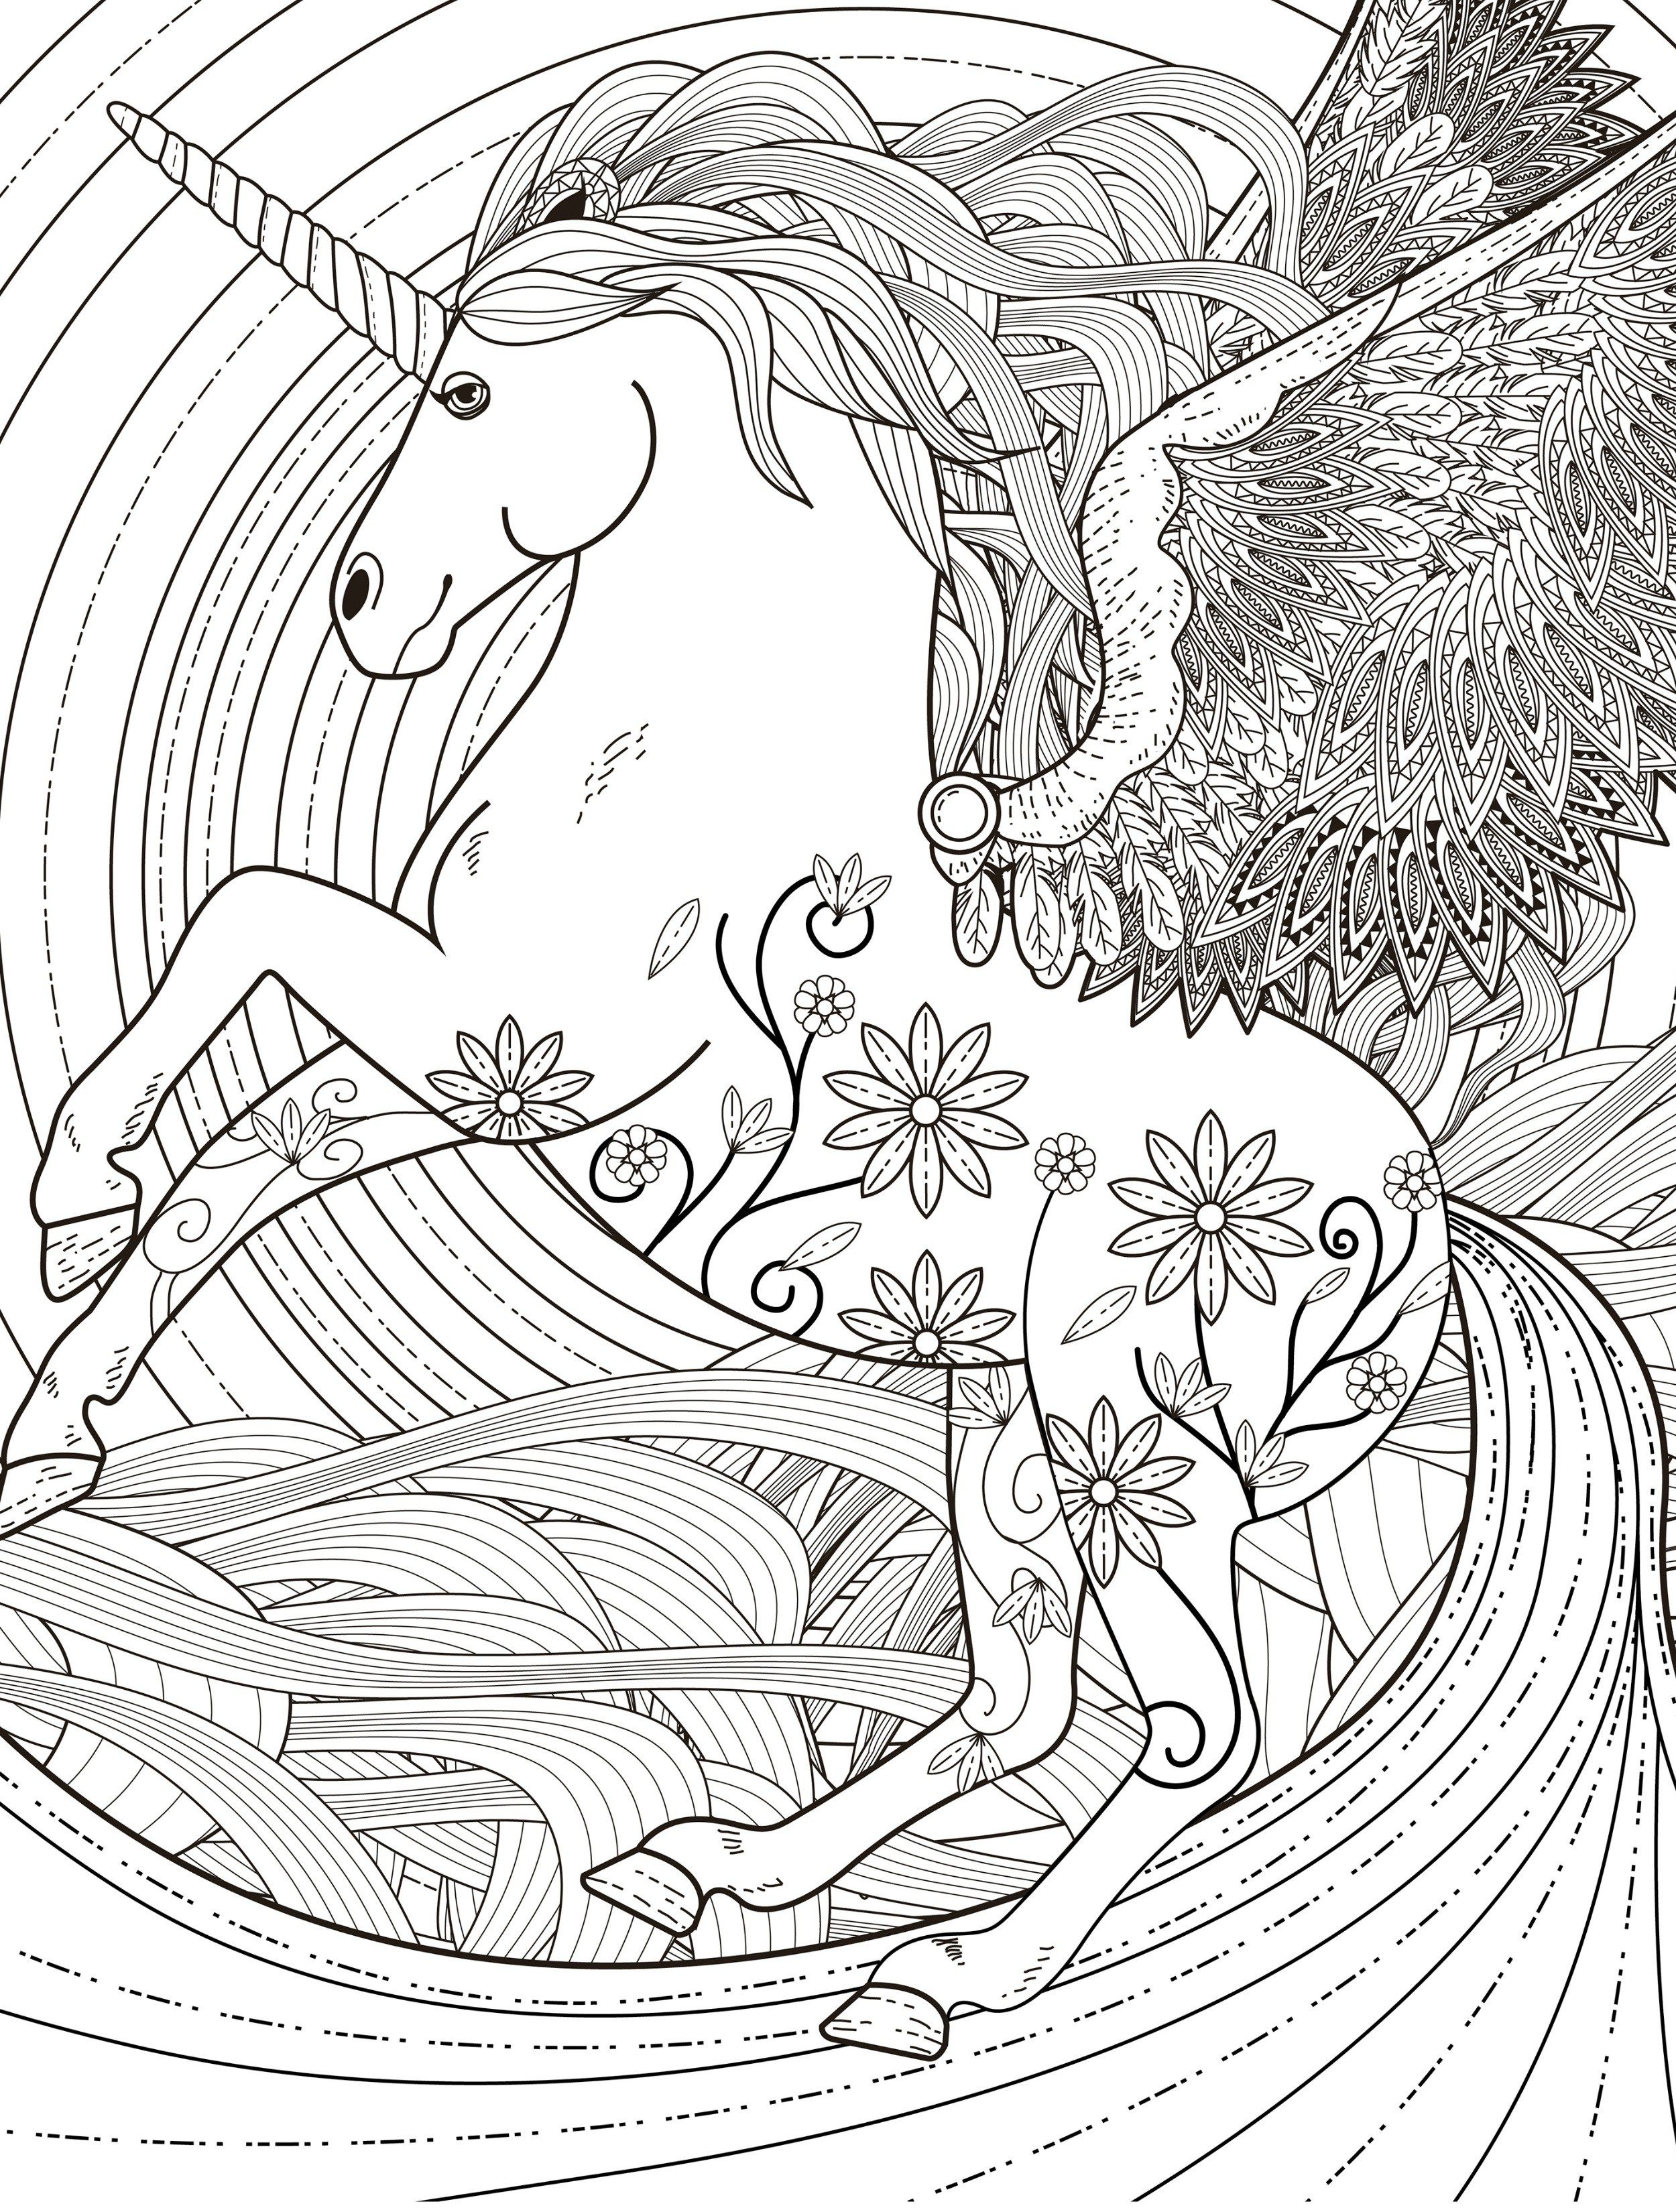 pegasus adult coloring page free download Davlin